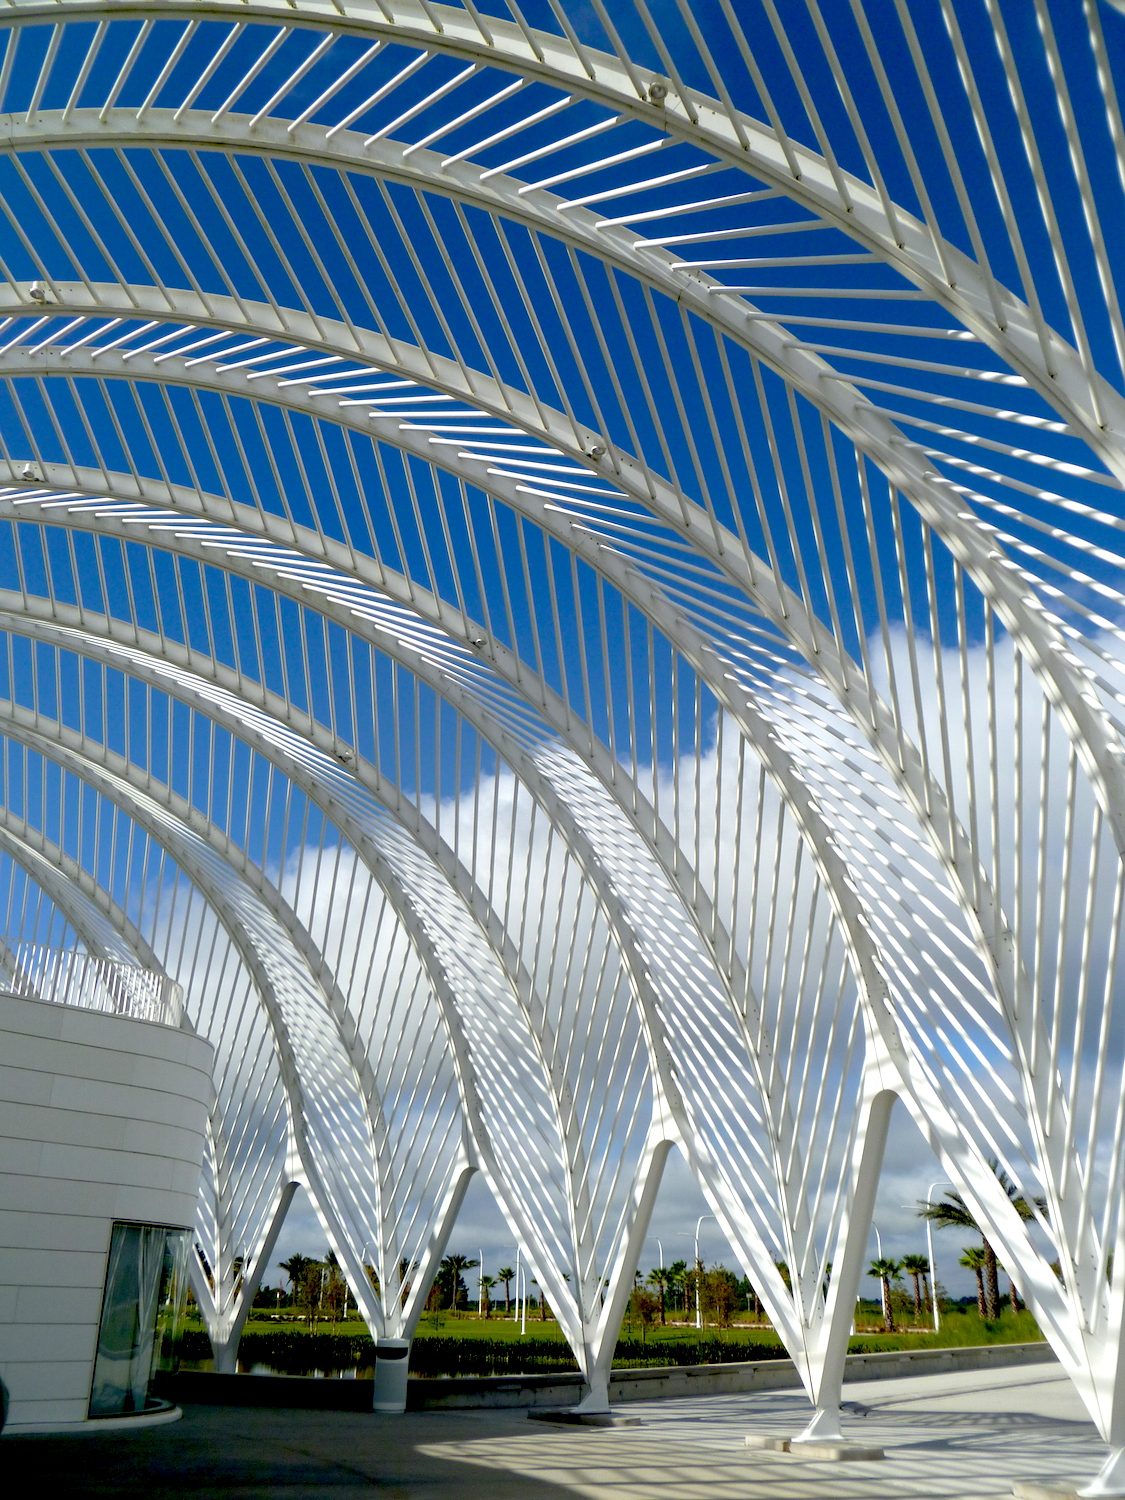 Calatrava's bridge for Florida, Poly Tech